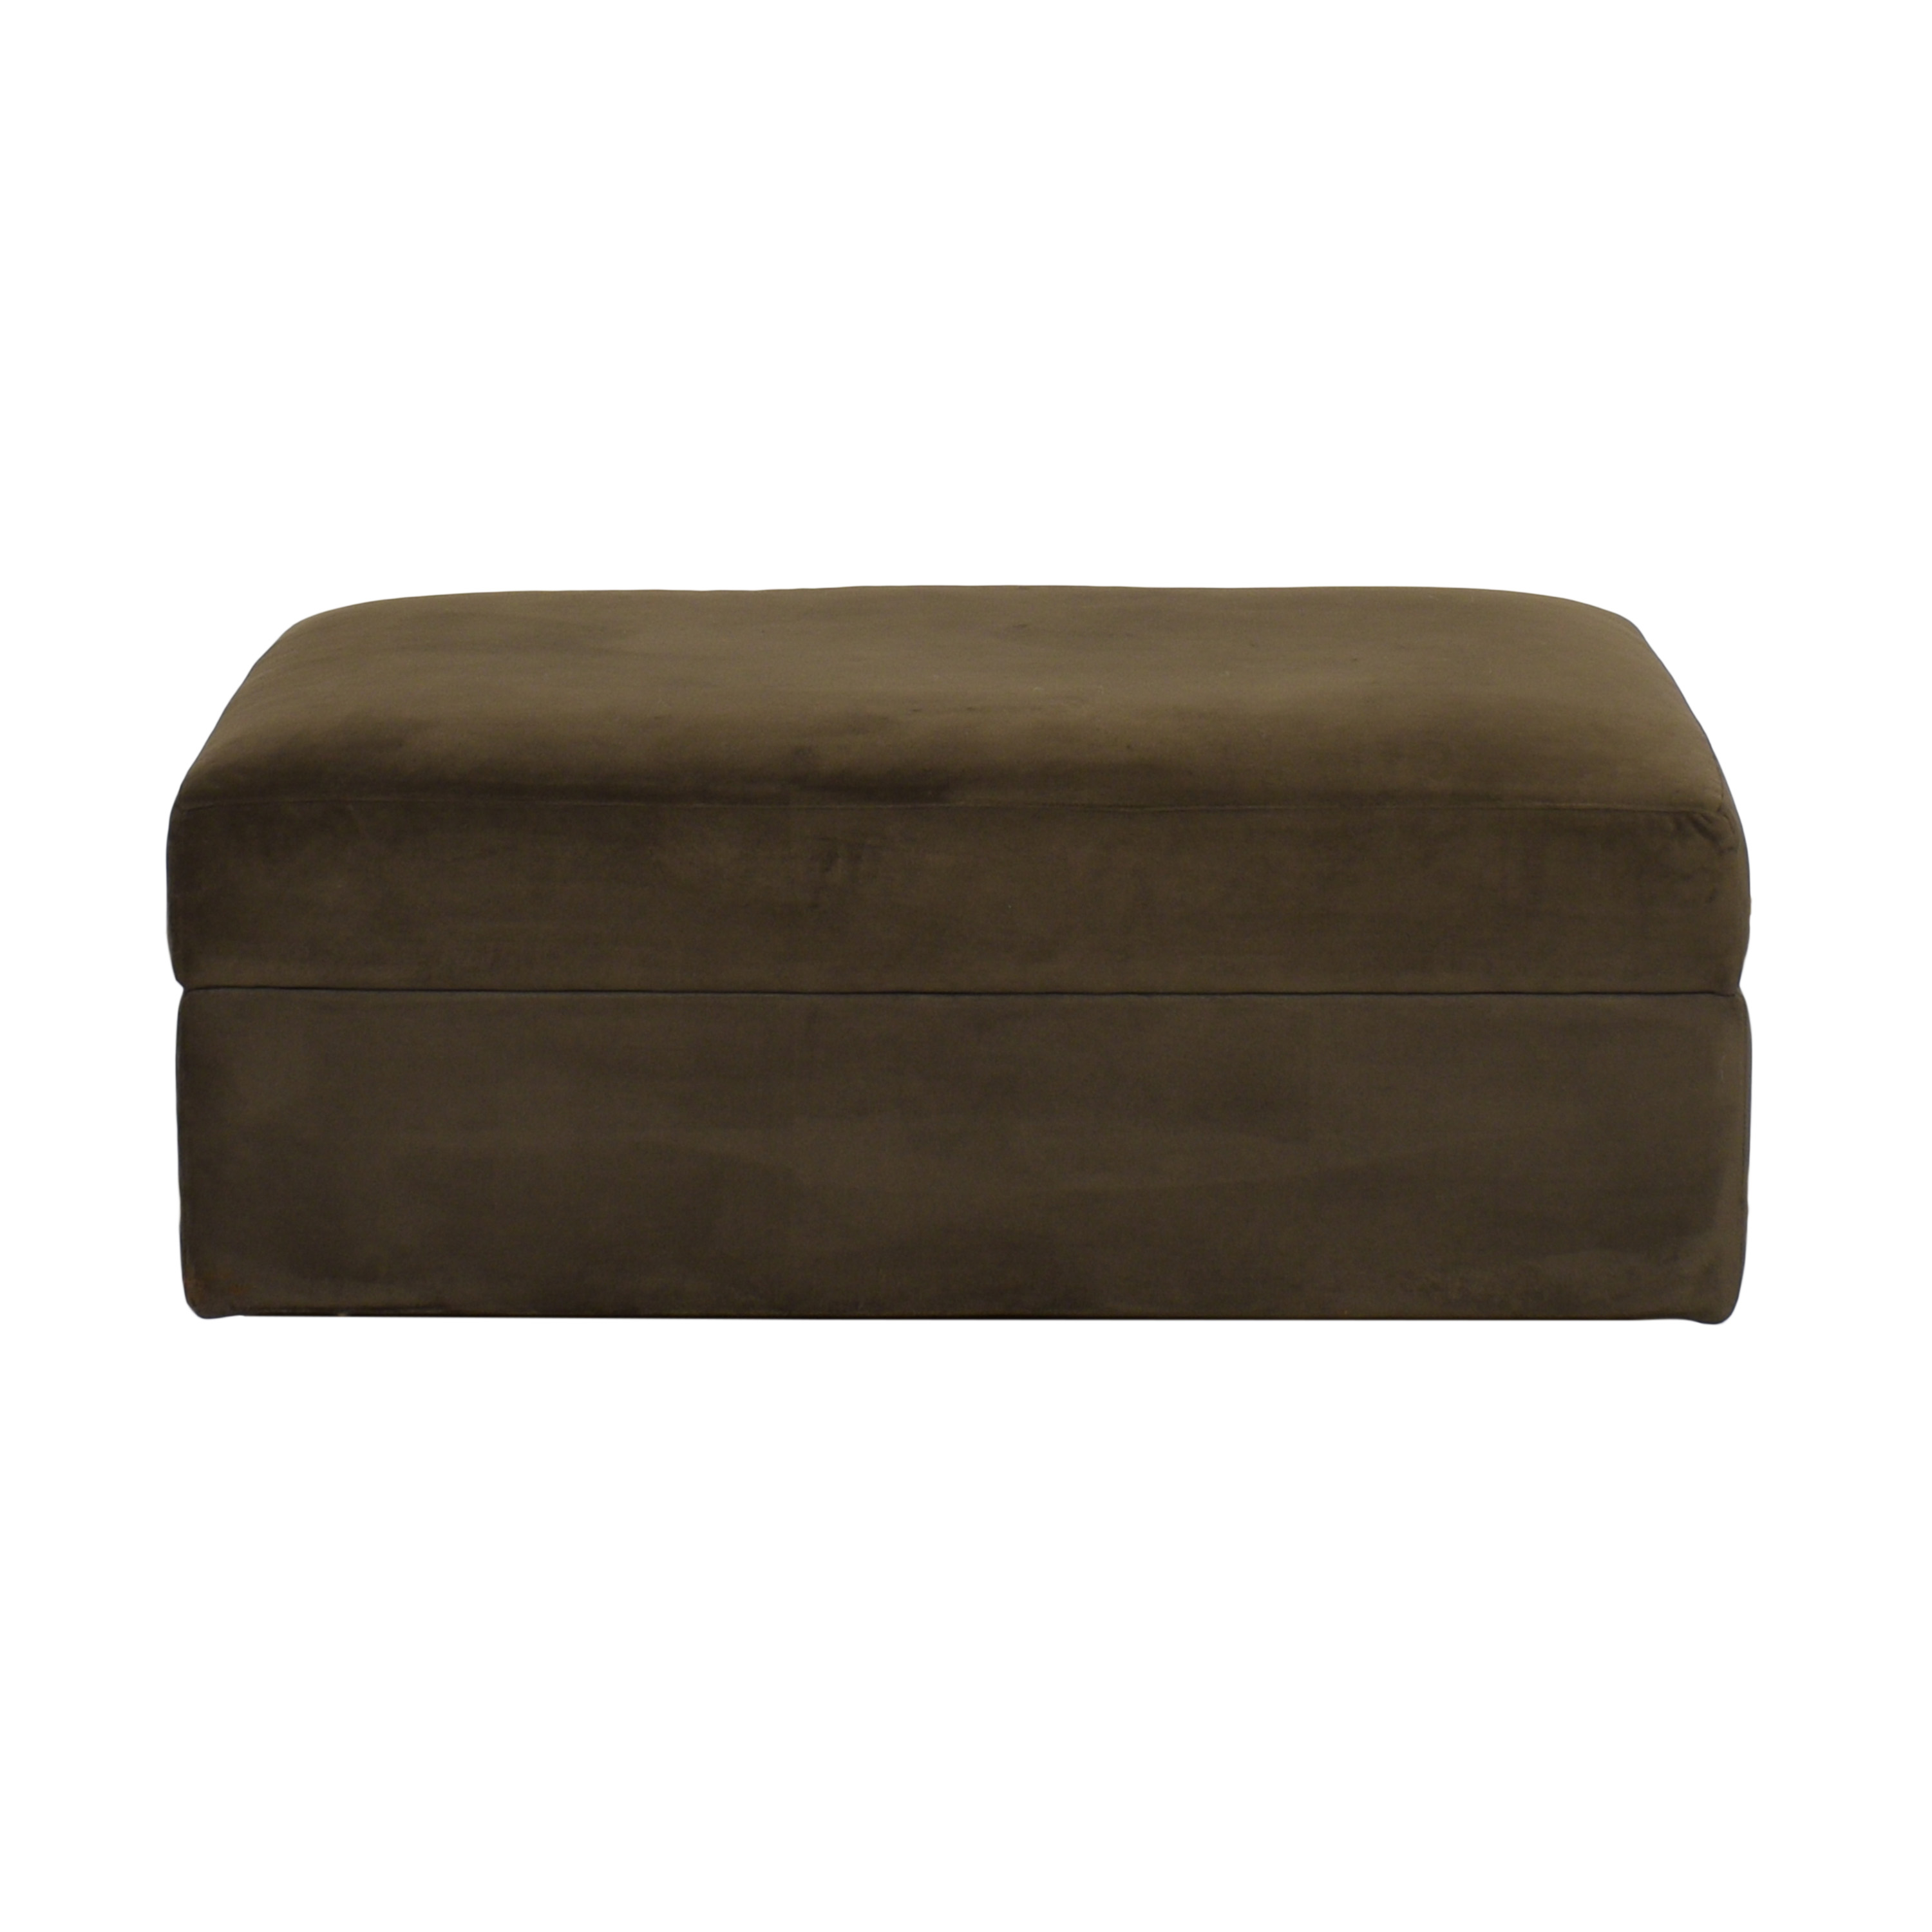 Crate & Barrel Crate & Barrel Lounge II Storage Ottoman with Casters price